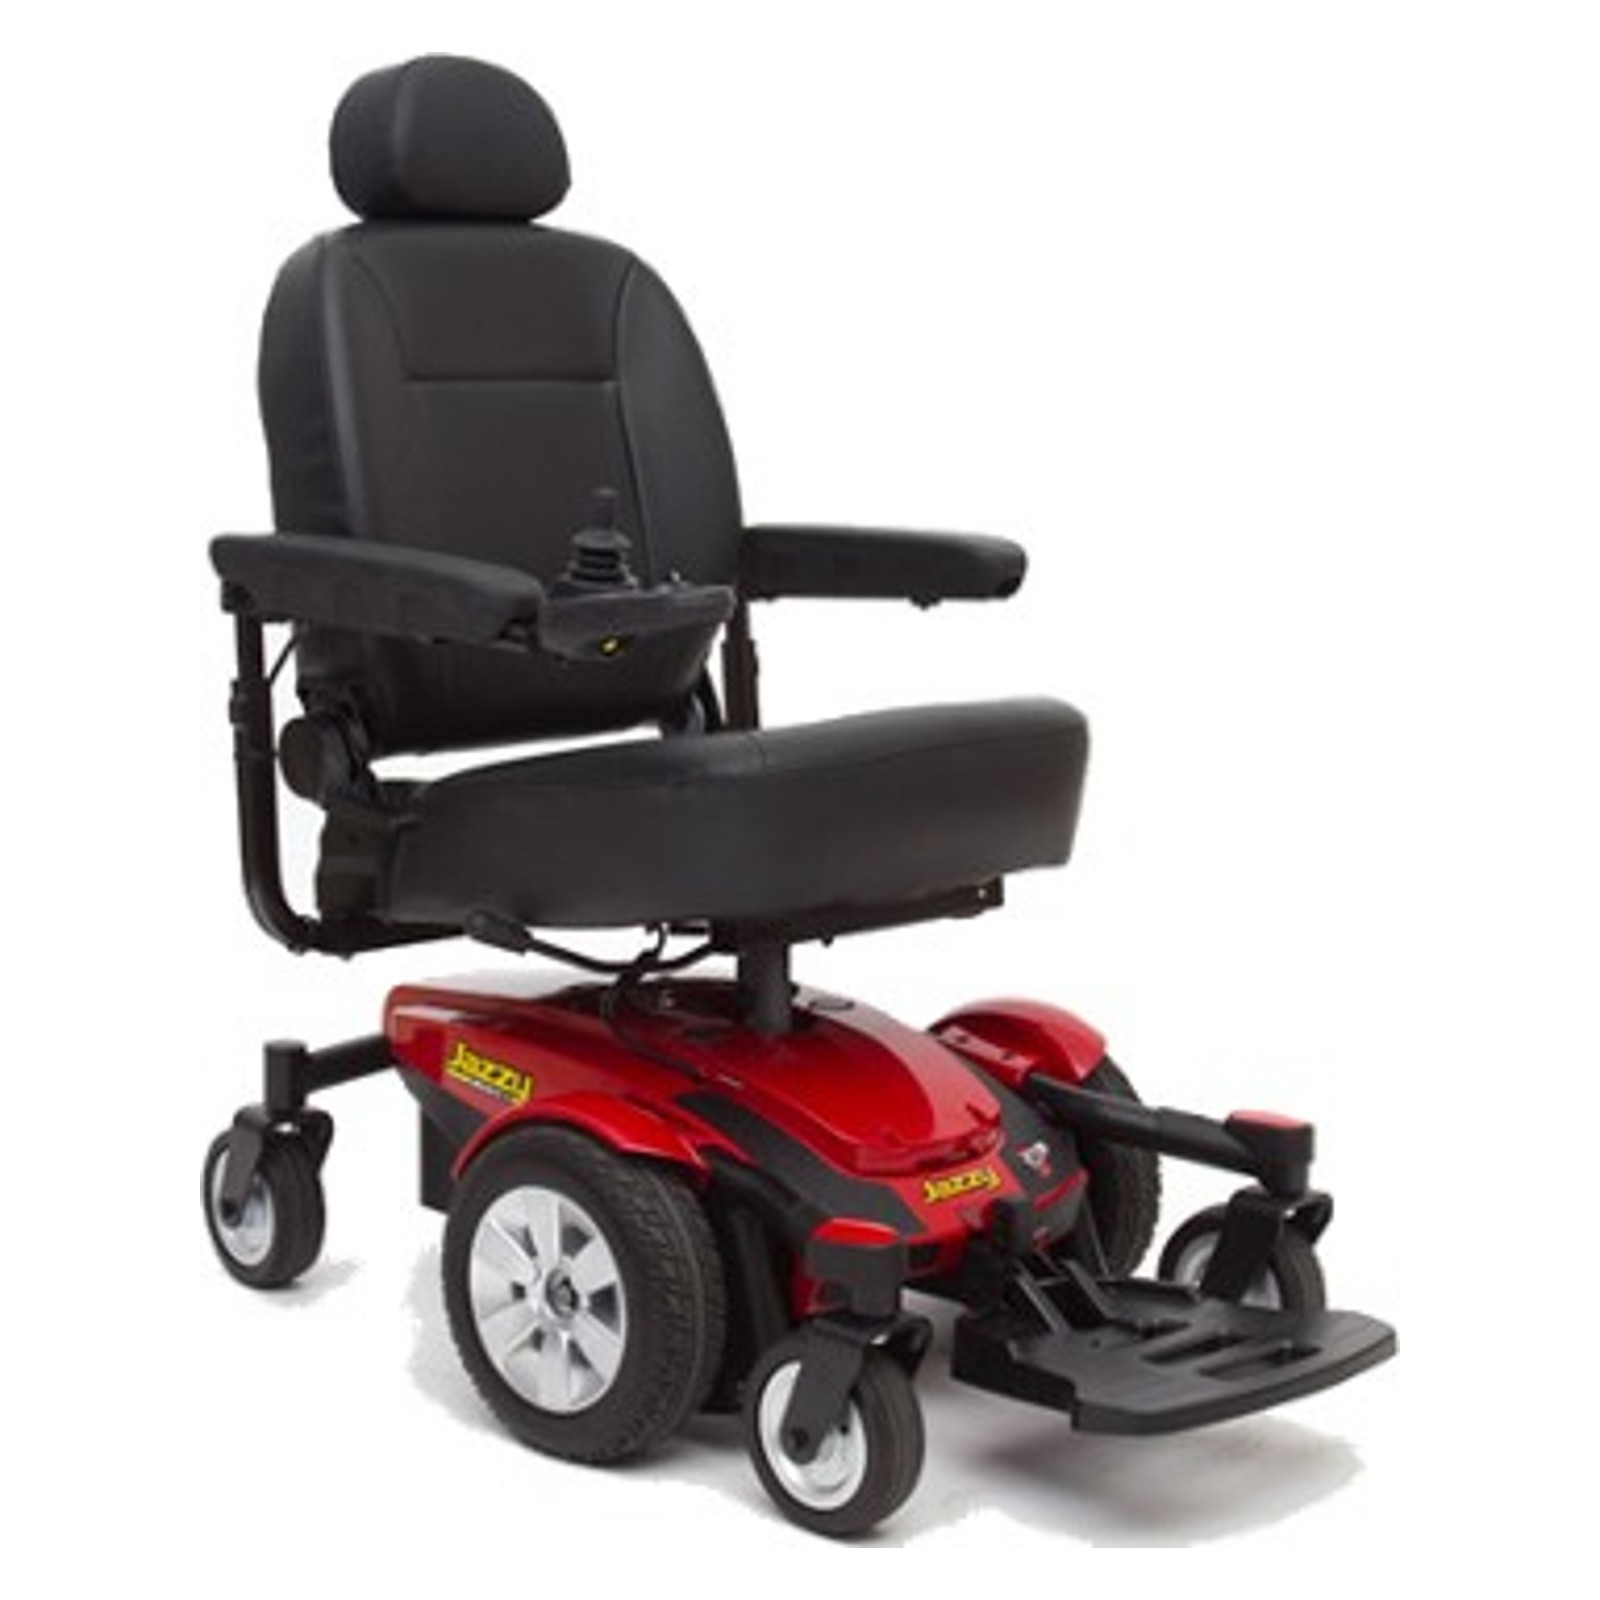 power chairs for sale double lounge chair wheelchairs in canada pride mobility jazzy select